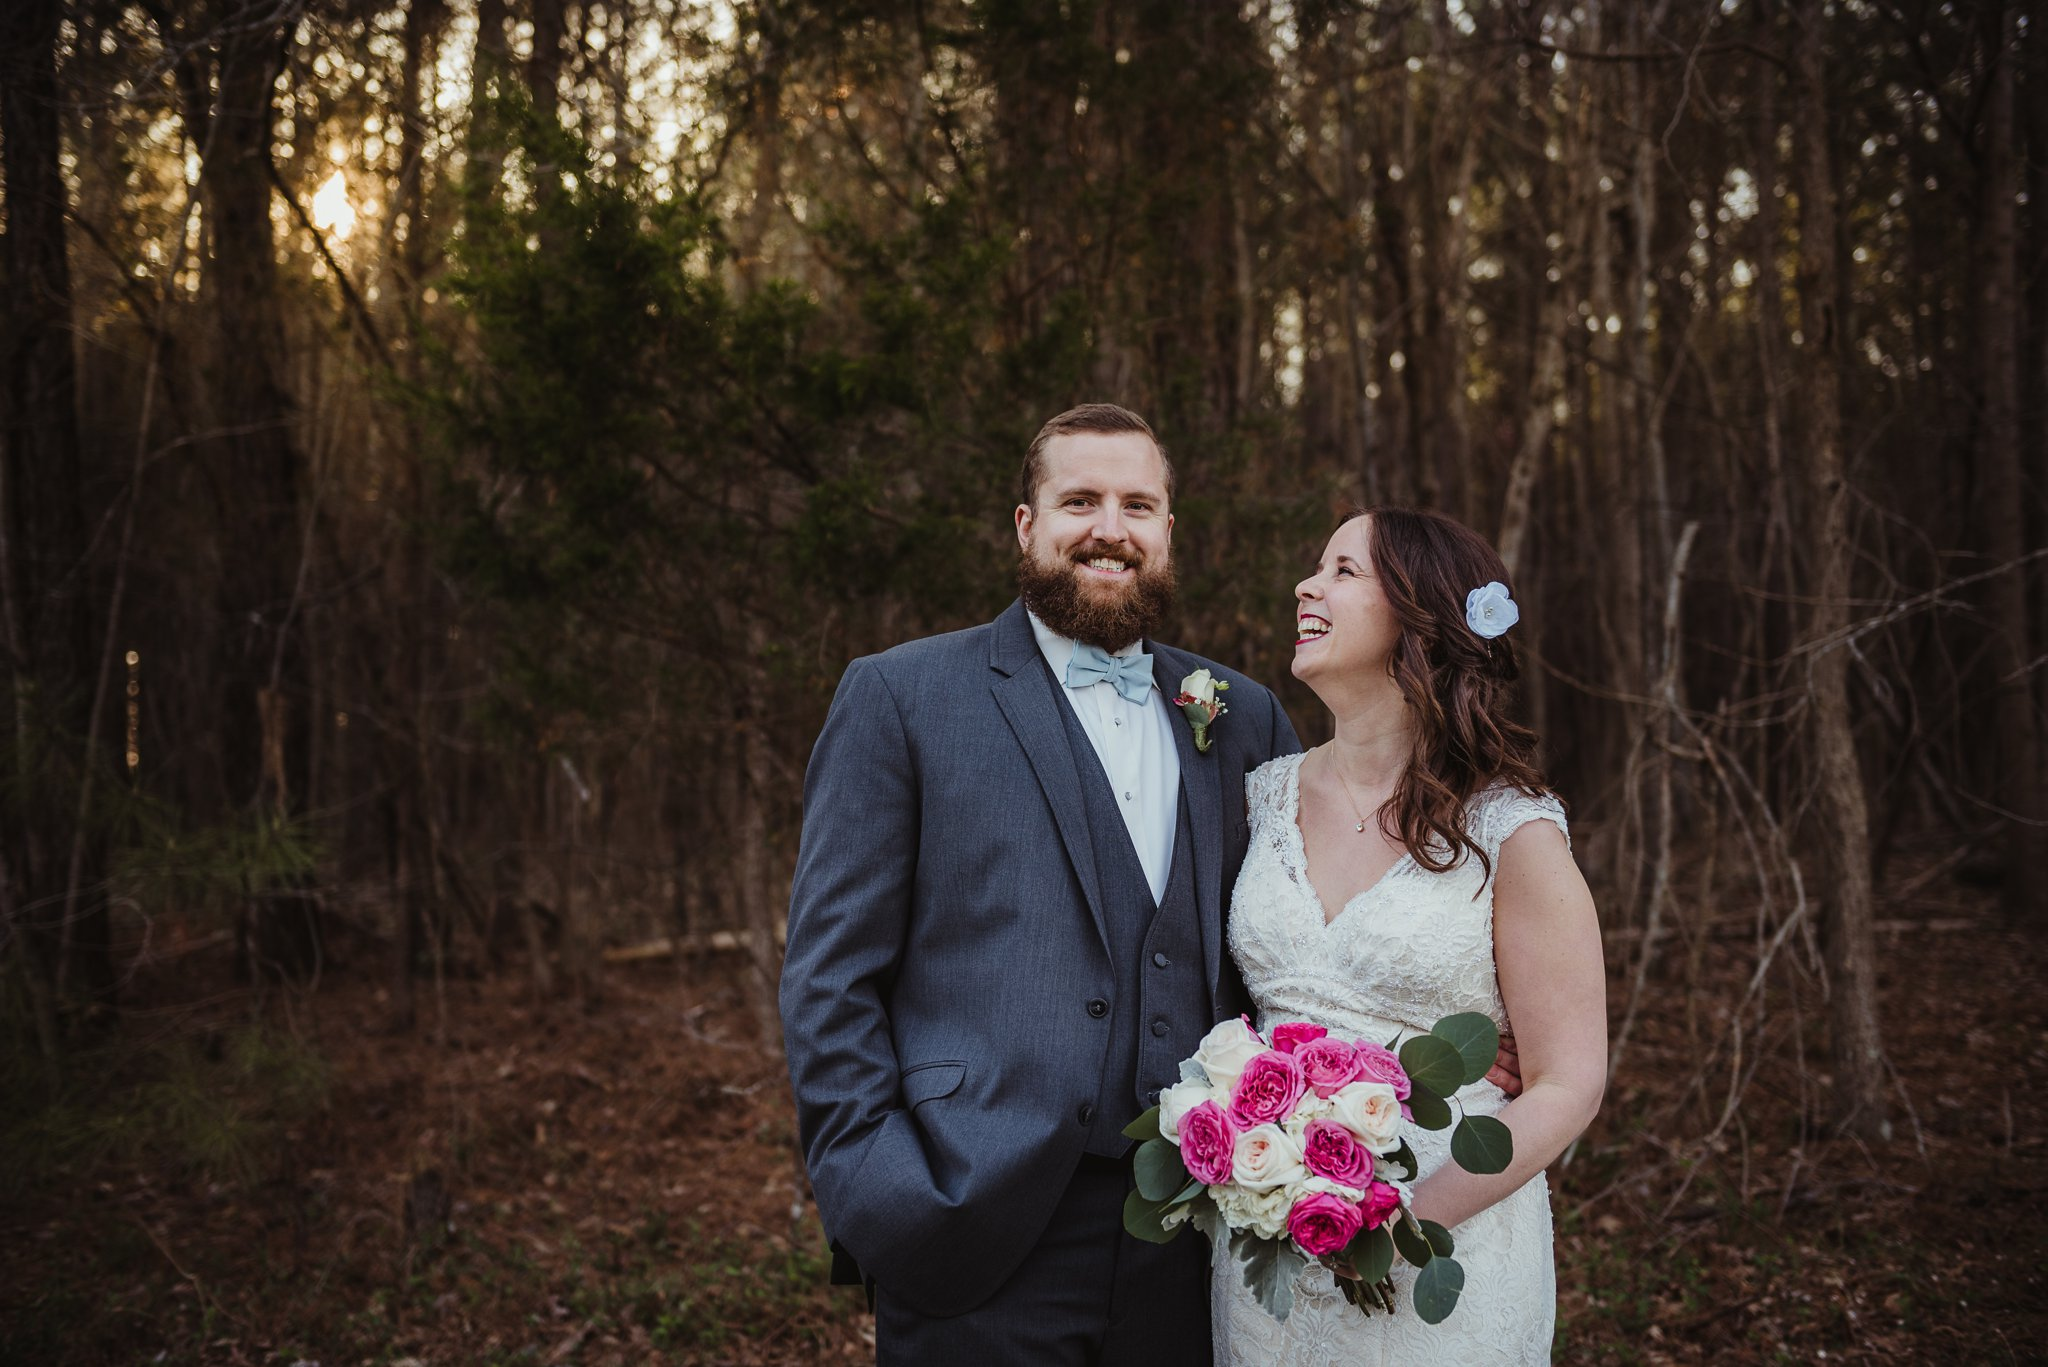 The bride and groom have their portraits taken by Rose Trail Images at their wedding venue in Oxford , NC called Carlee Farms.